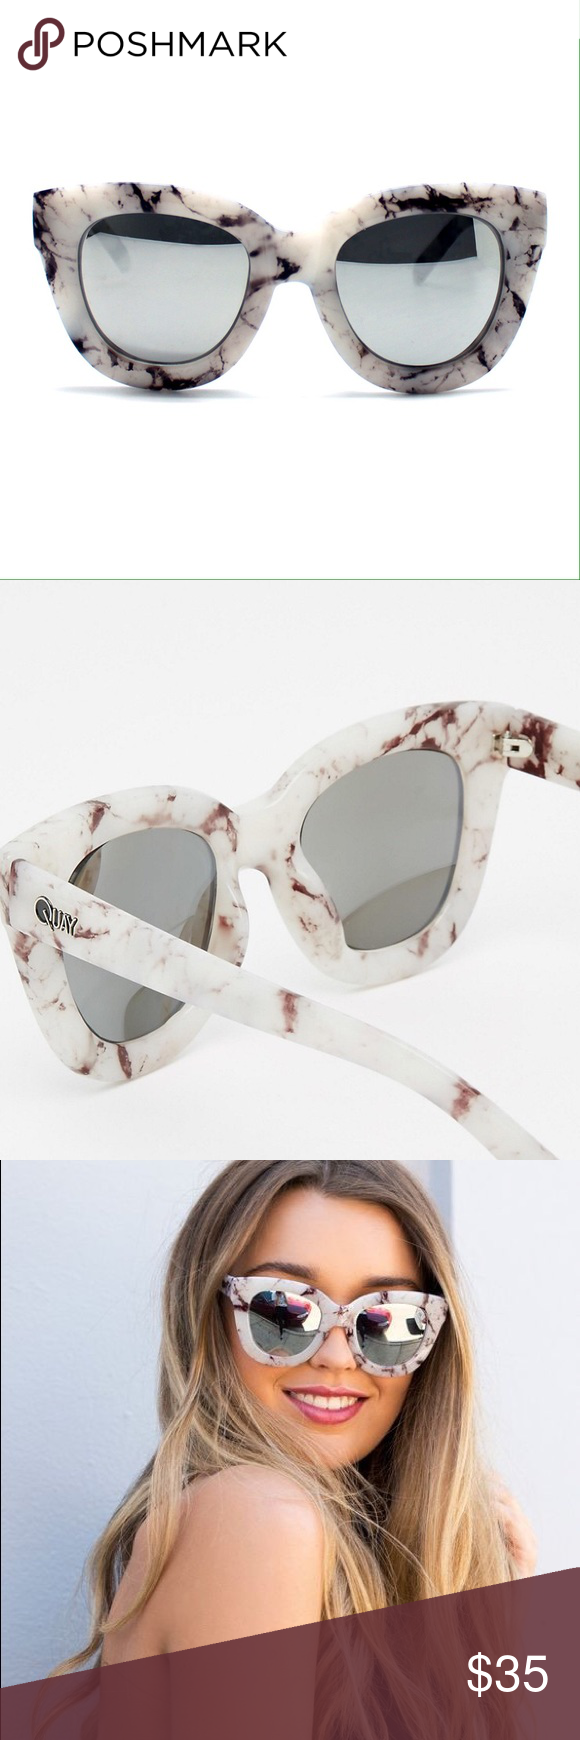 8371744144 Quay sugar and spice marble cat eye sunglasses In near perfect condition